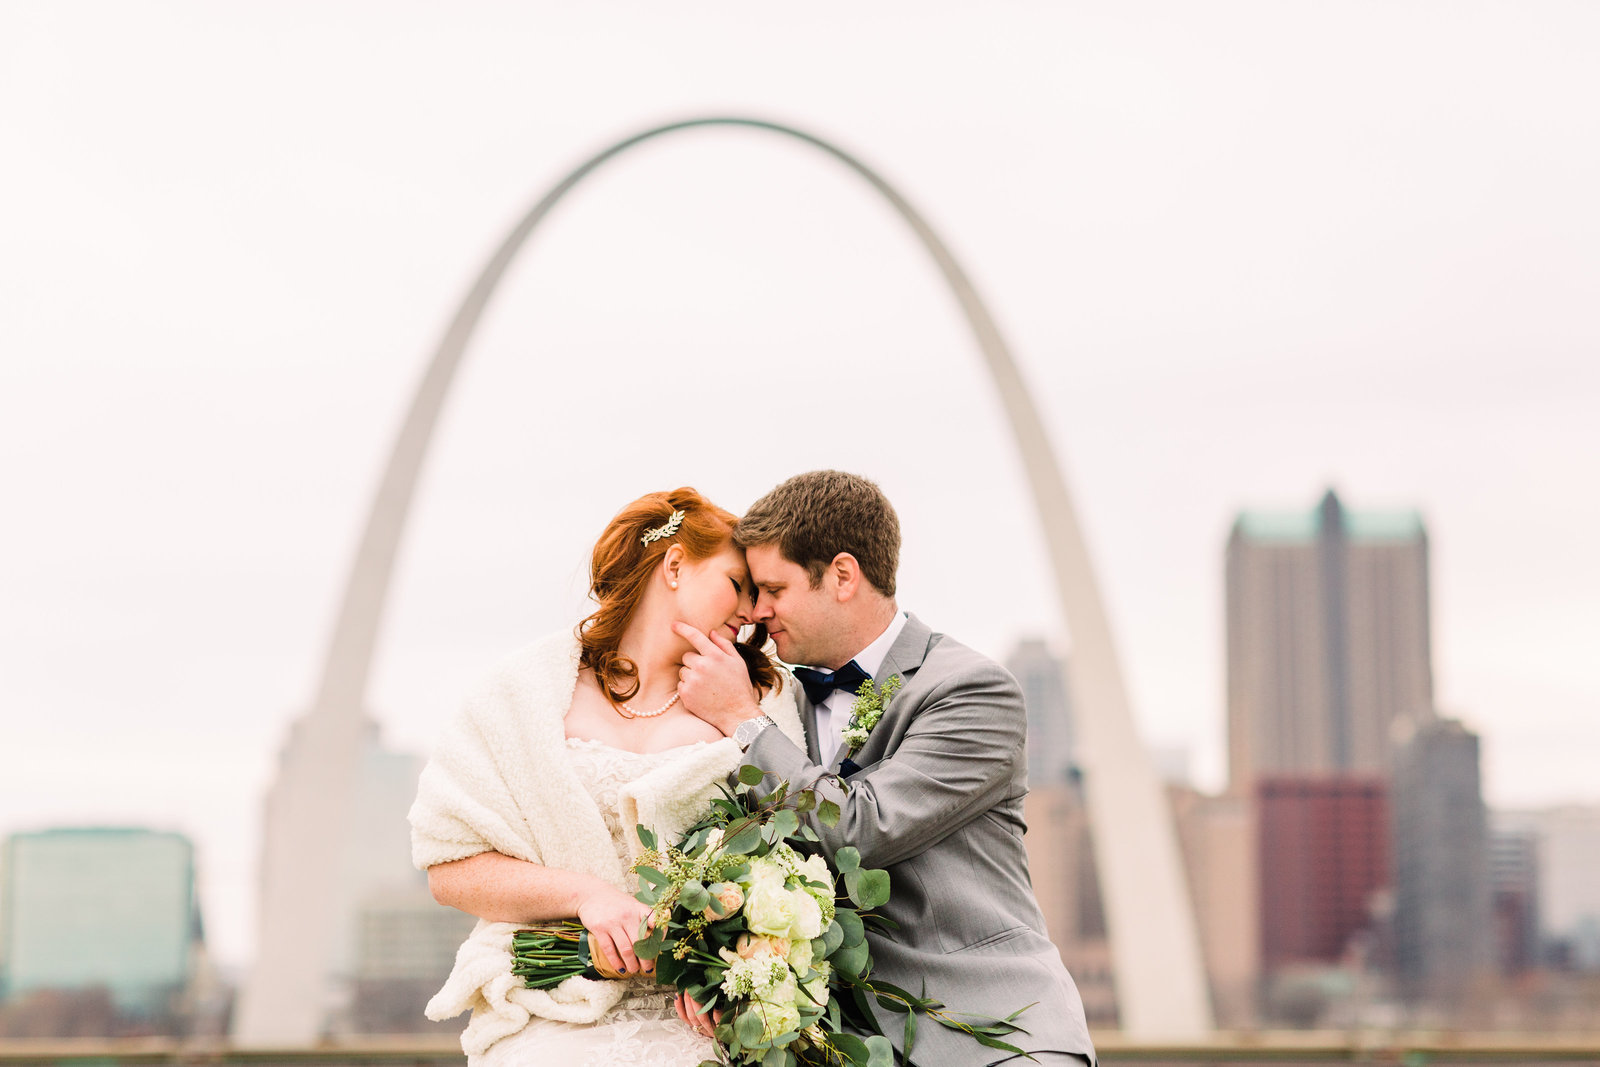 Bride and Groom, Kailyn and Adam, sit side by side leaning in for a kiss with the St. Louis Skyline and Arch in the background